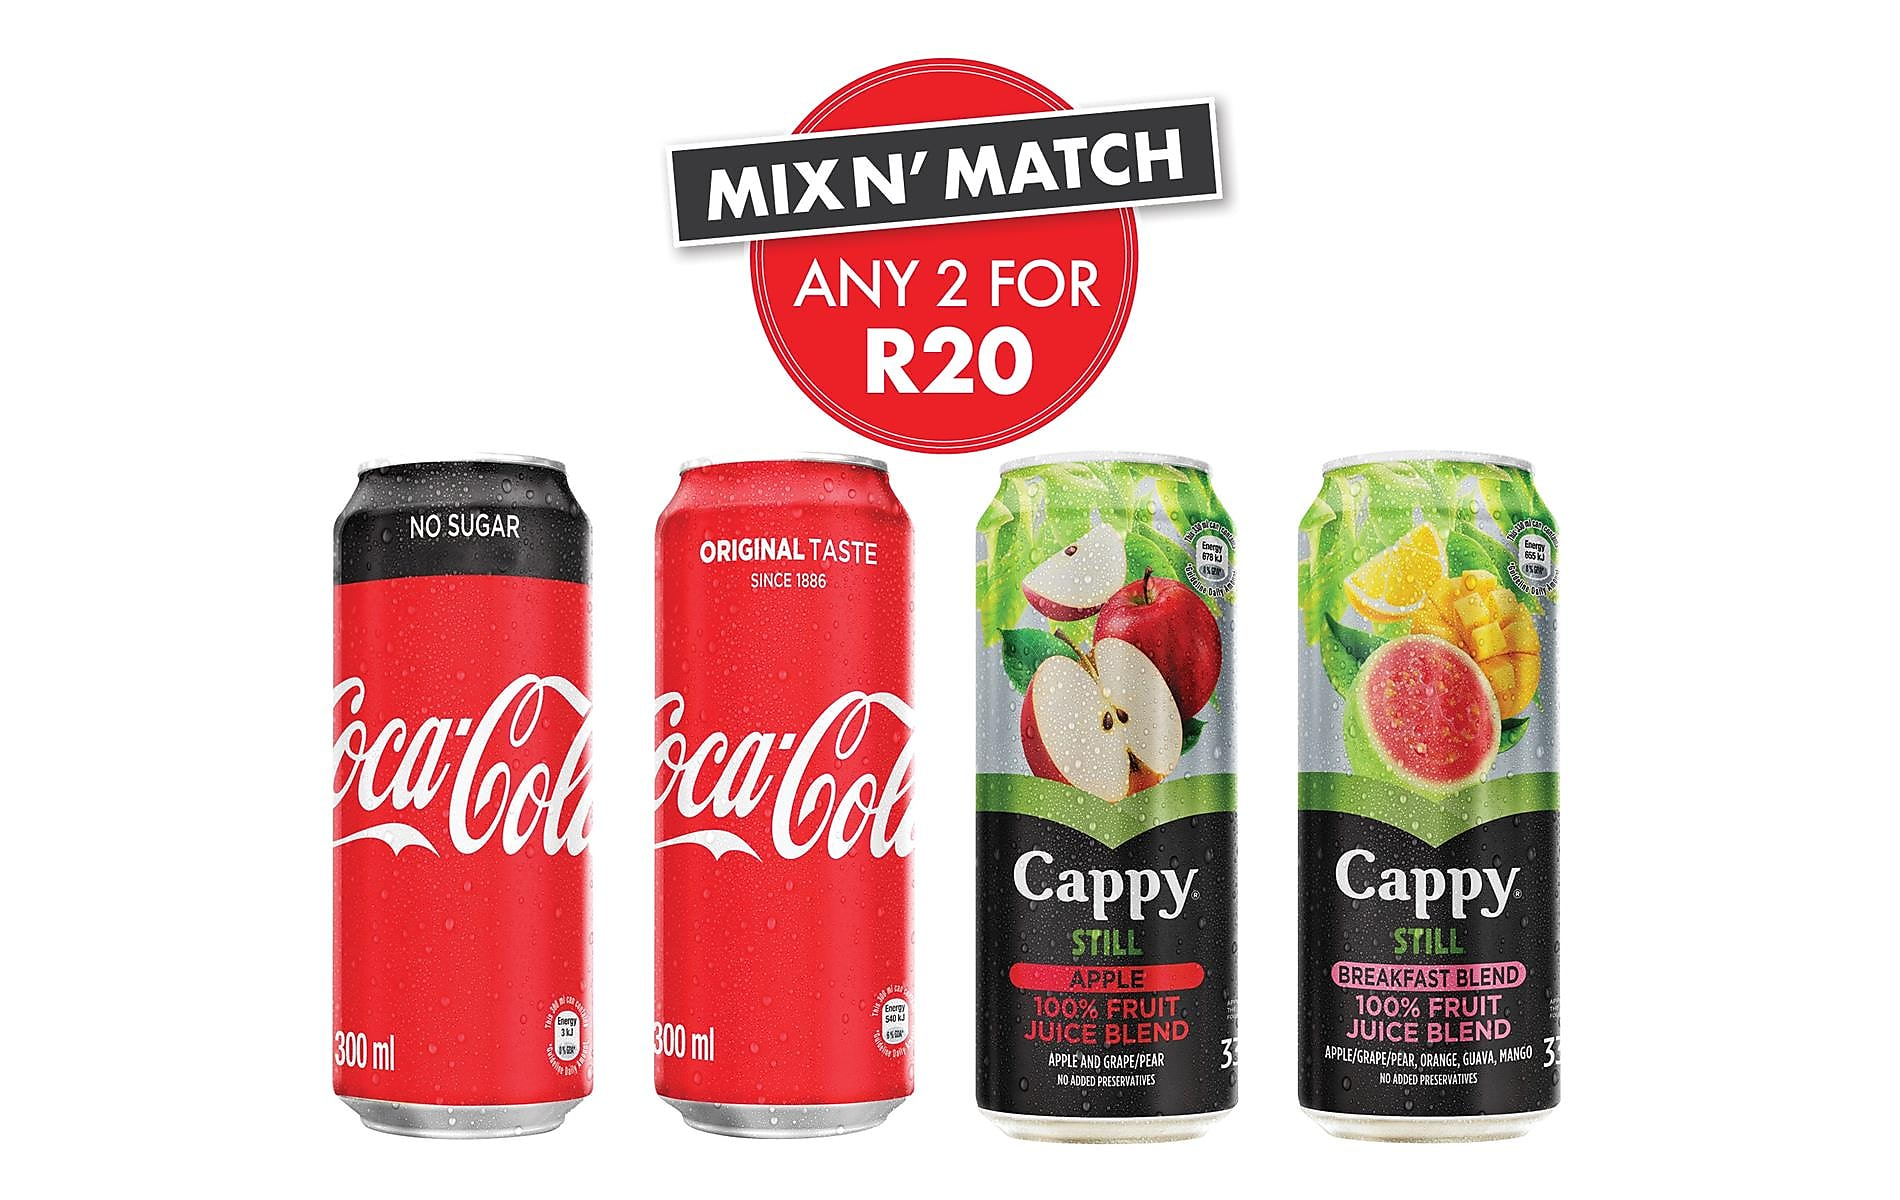 Mix n' Match With Coca-Cola® AND Cappy Juice